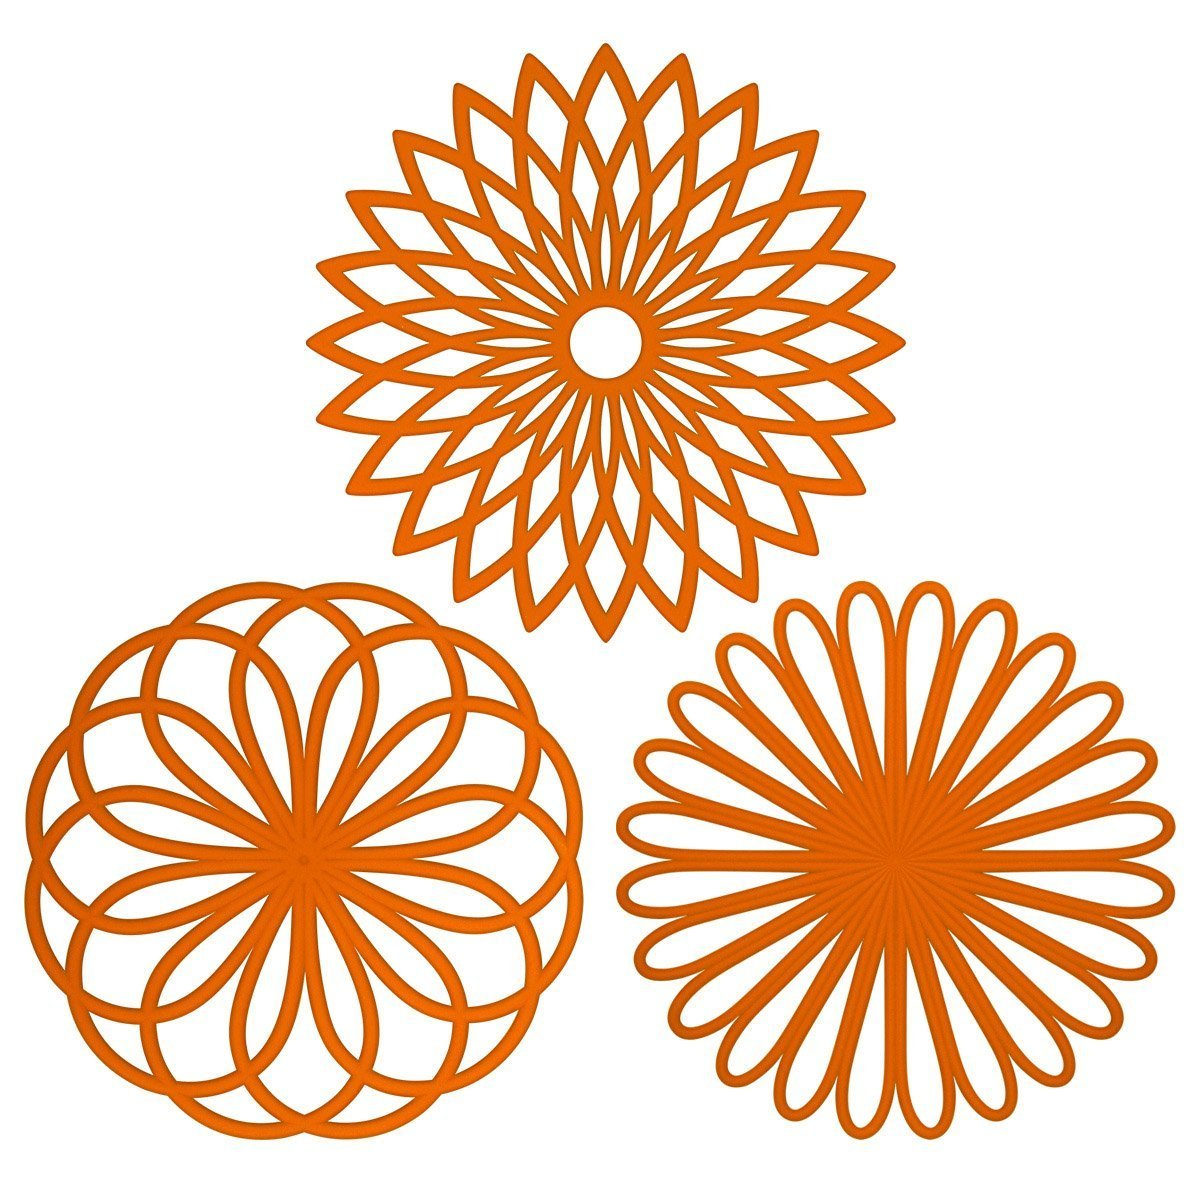 ME.FAN 3 Set Silicone Multi-Use Flower Trivet Mat - Premium Quality Insulated Flexible Durable Non Slip Coasters Hot PadsOrange